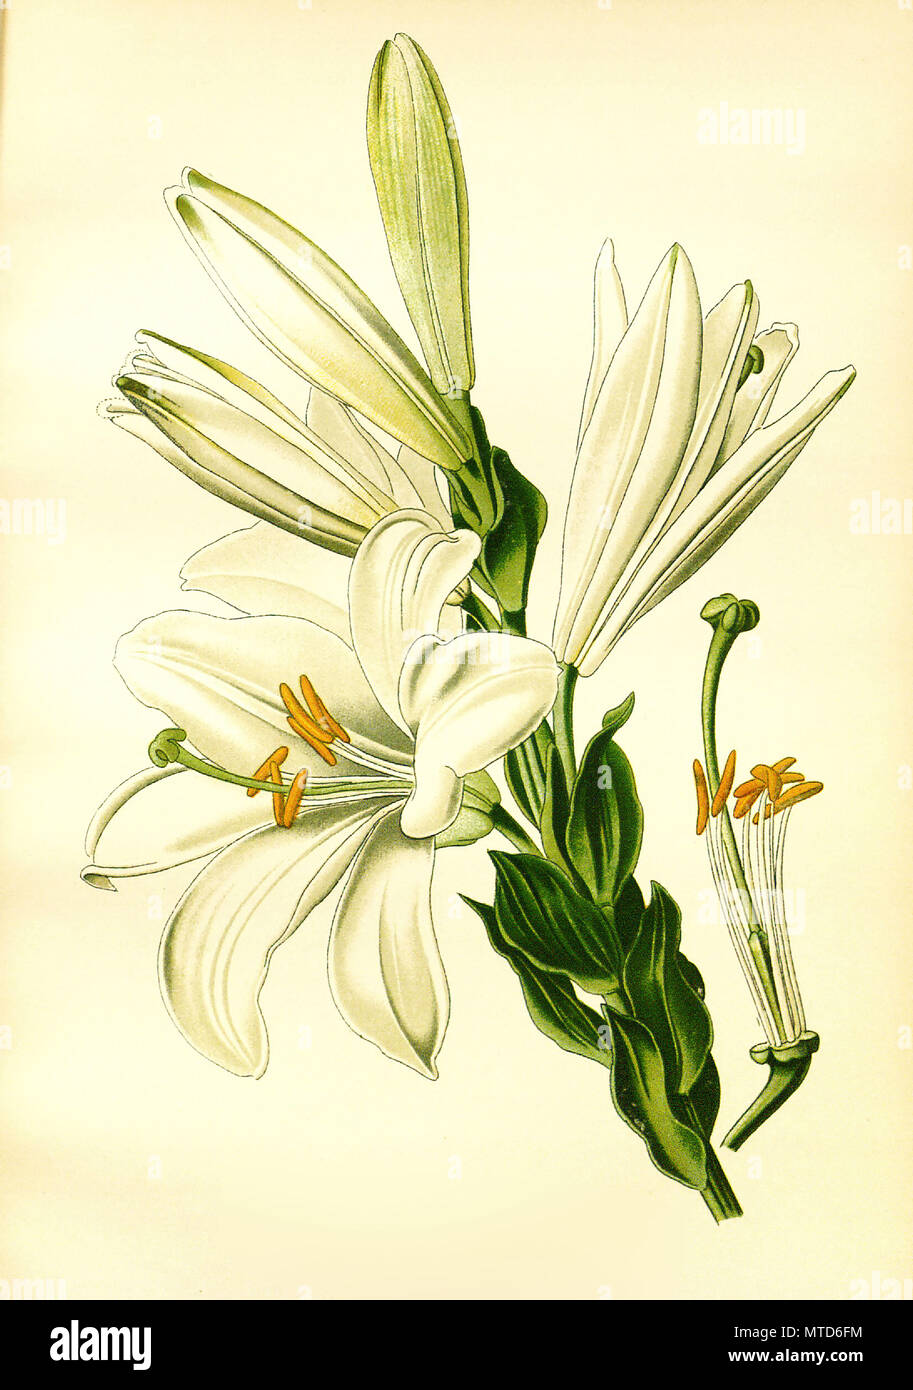 Lilium Candidum White Or St Josephs Lily Madonna Lily Madonnen Lilie Digital Improved Reproduction From A Print Of The 19th Century Stock Photo Alamy